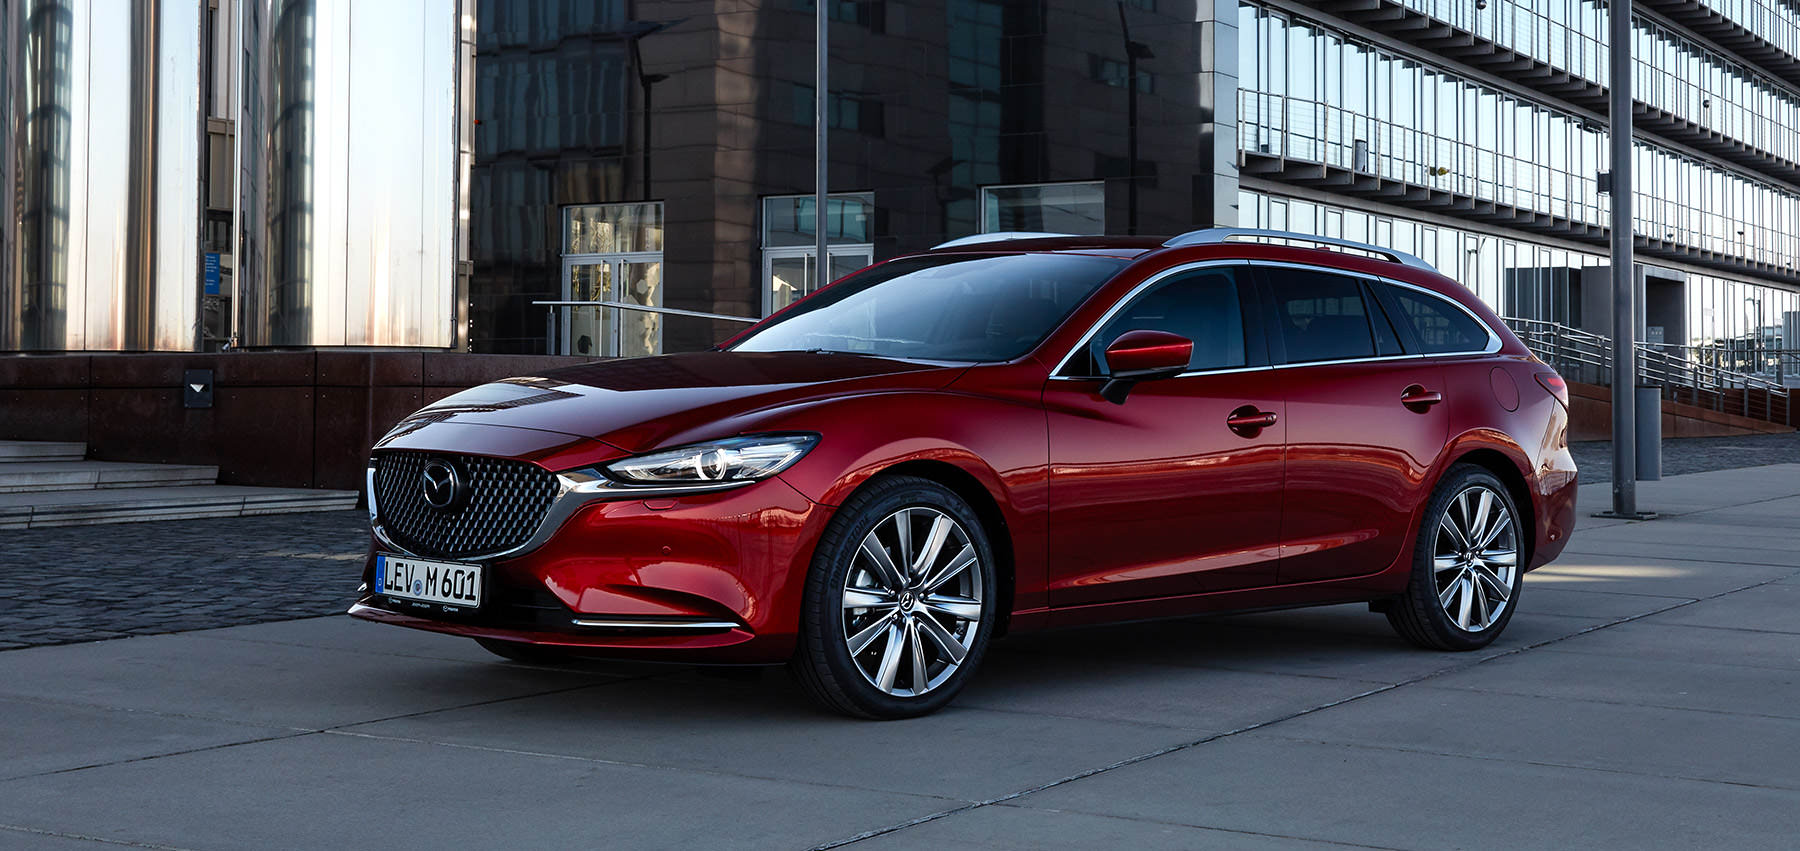 2020 Mazda 6s Release Date and Concept